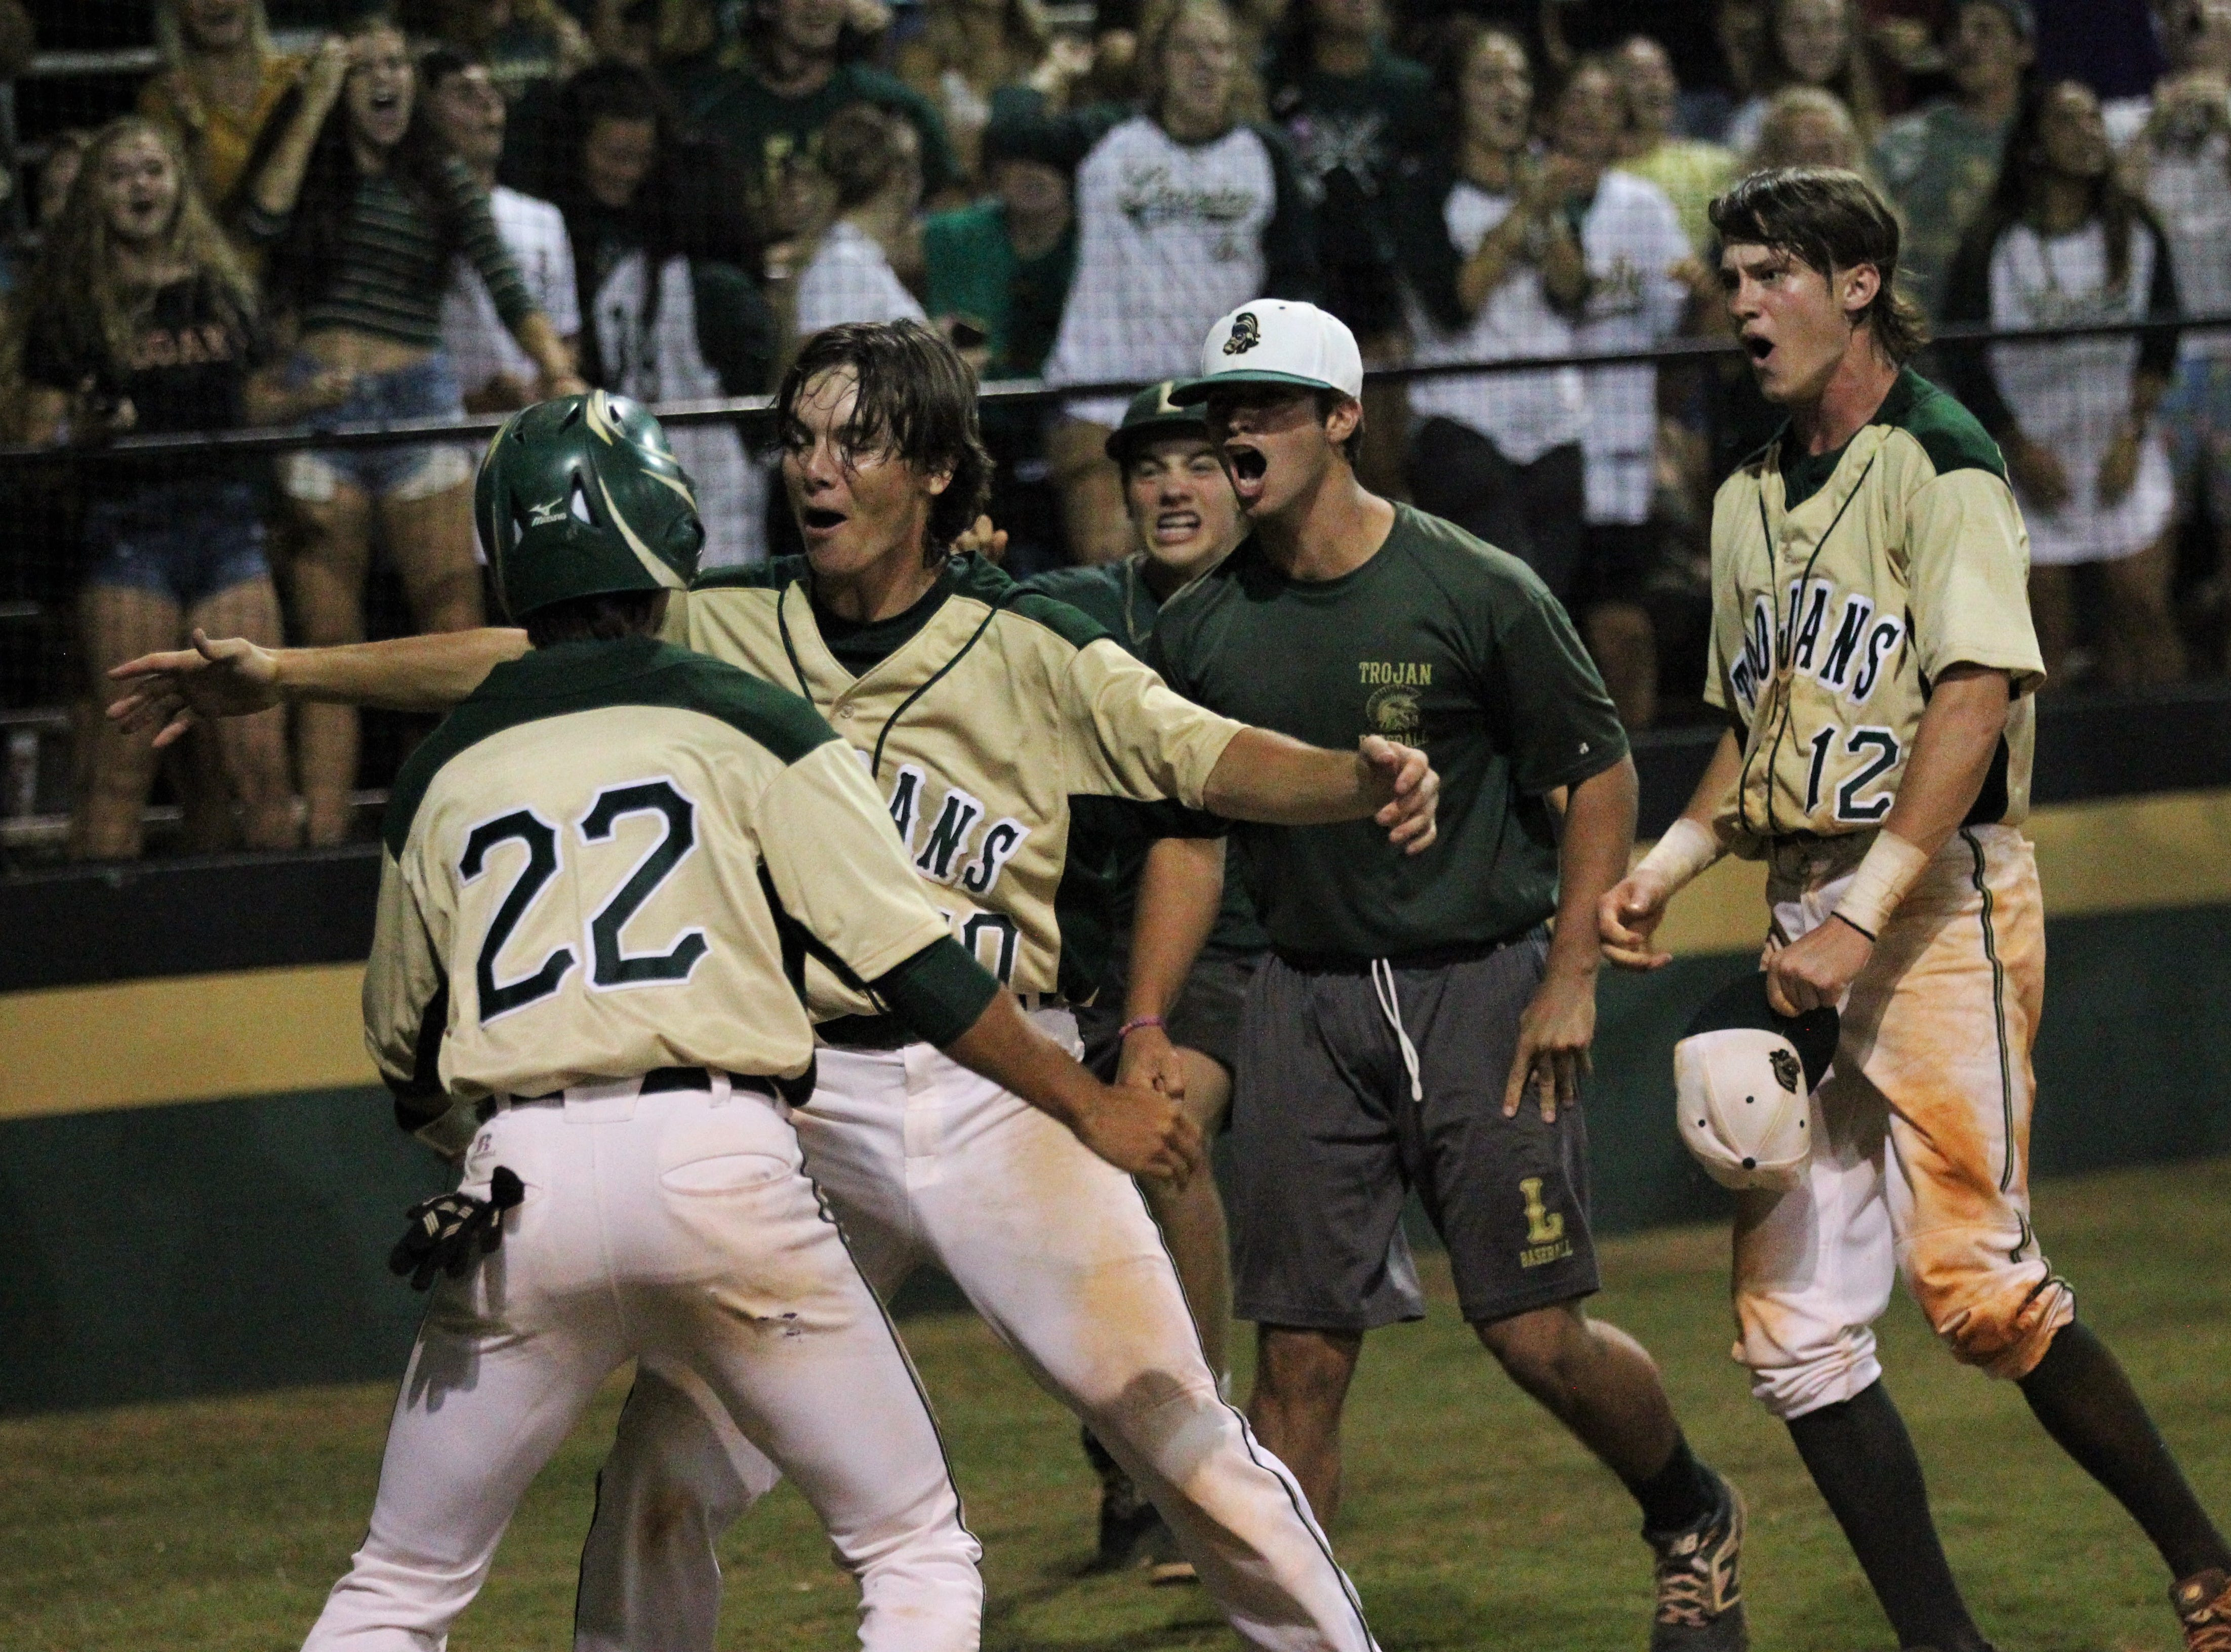 Lincoln's Connor Majors (22) scores the game-tying run in the bottom of the seventh on an error as Lincoln baseball beat Chiles 5-4  in 10 innings during a District 2-8A championship game on Thursday, May 9, 2019.